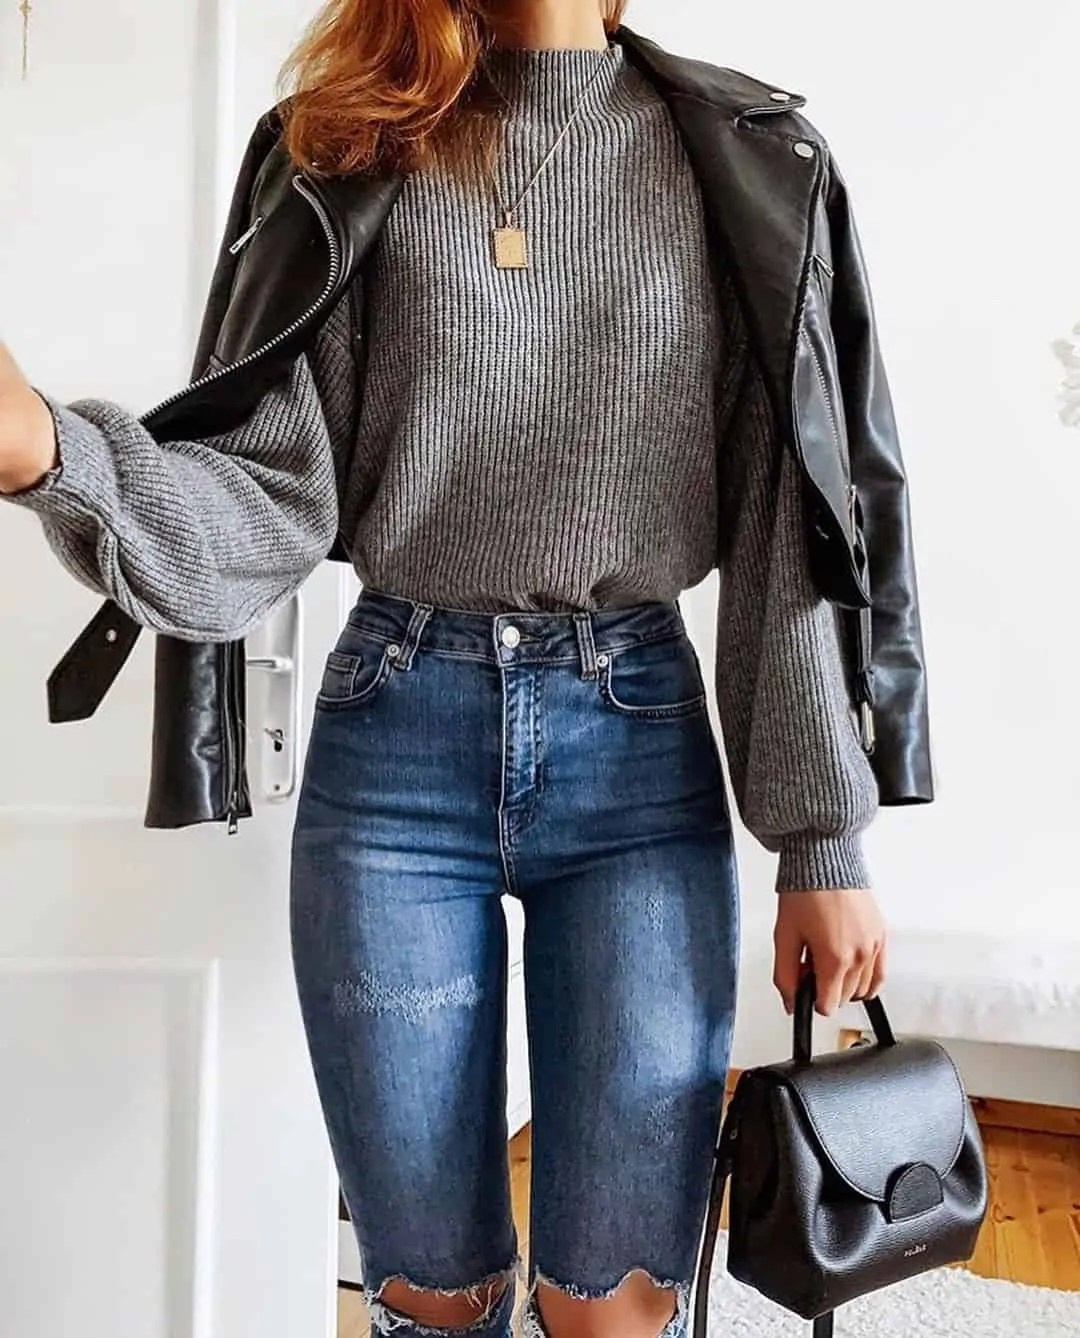 100+ fashion inspo outfits that you have to see no matter what your style is 7